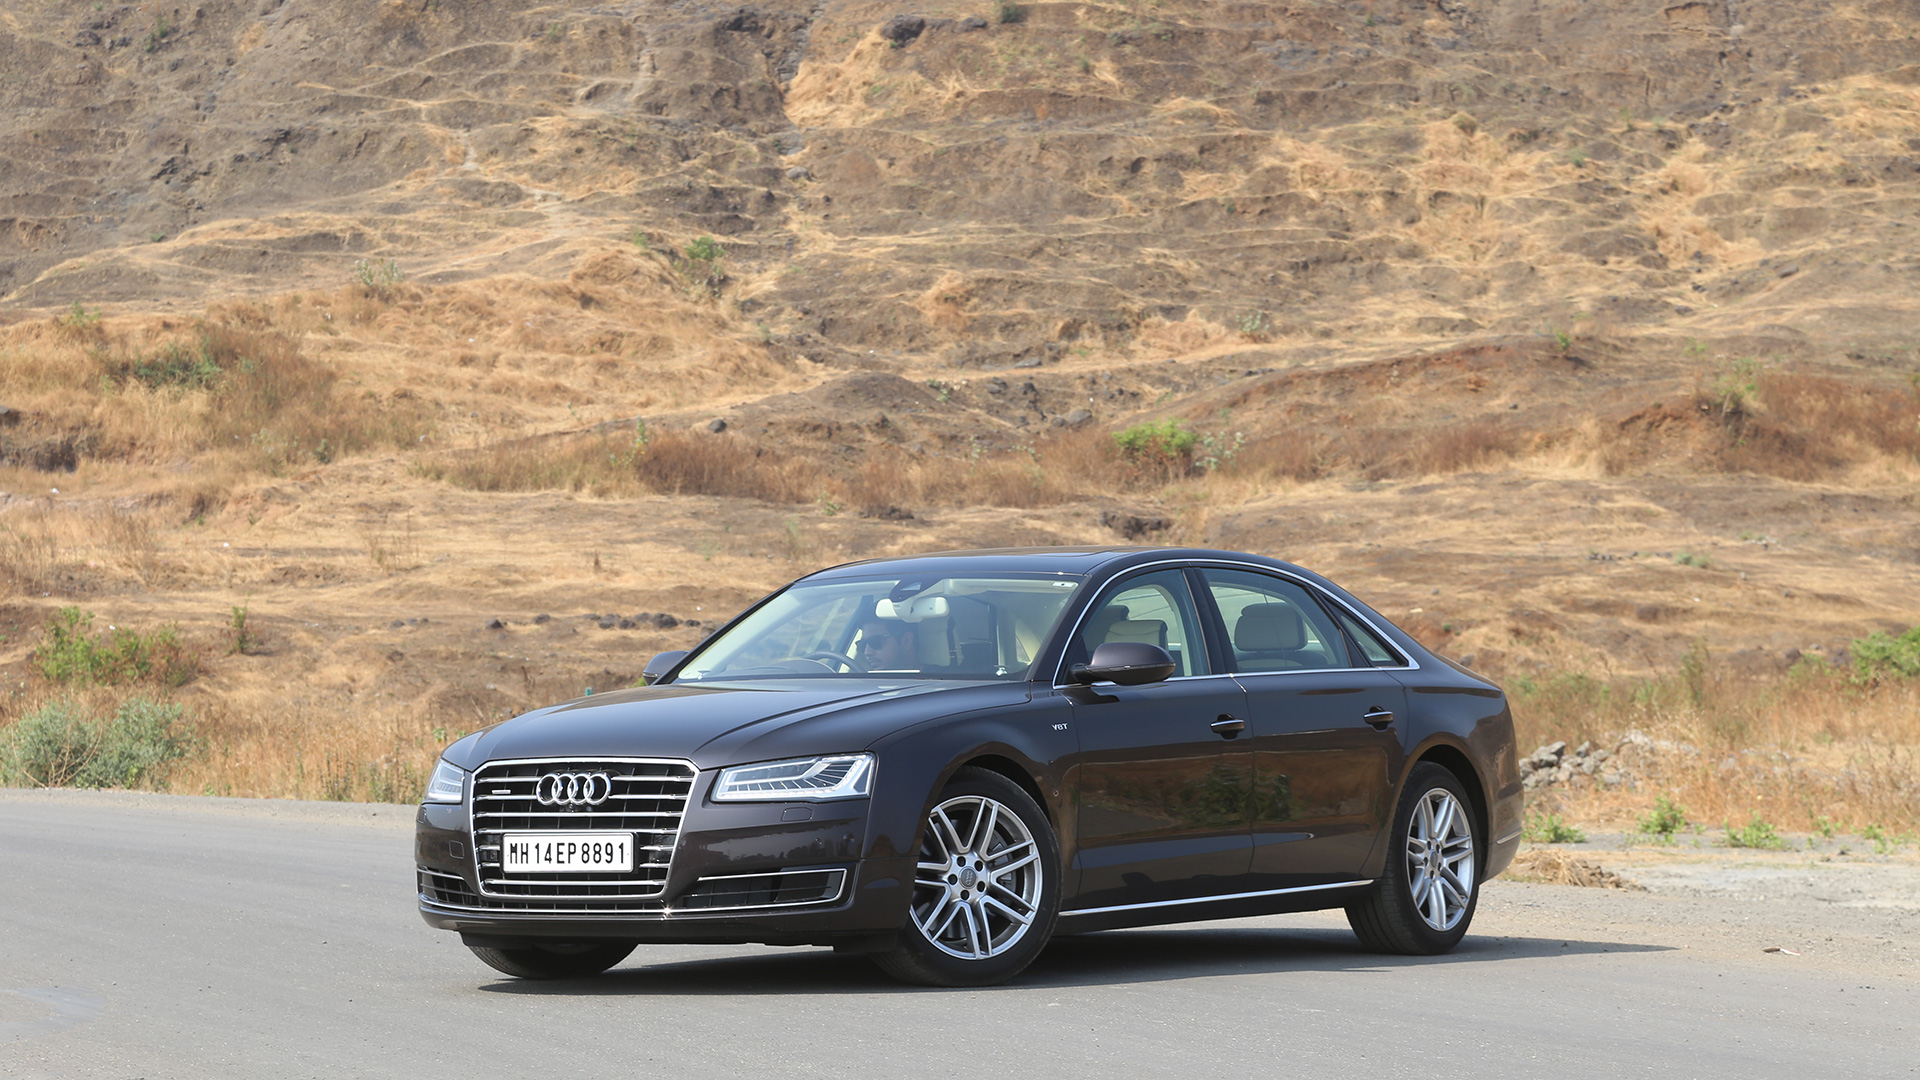 audi a8l 2016 l w12 fsi quattro price mileage reviews specification gallery overdrive. Black Bedroom Furniture Sets. Home Design Ideas